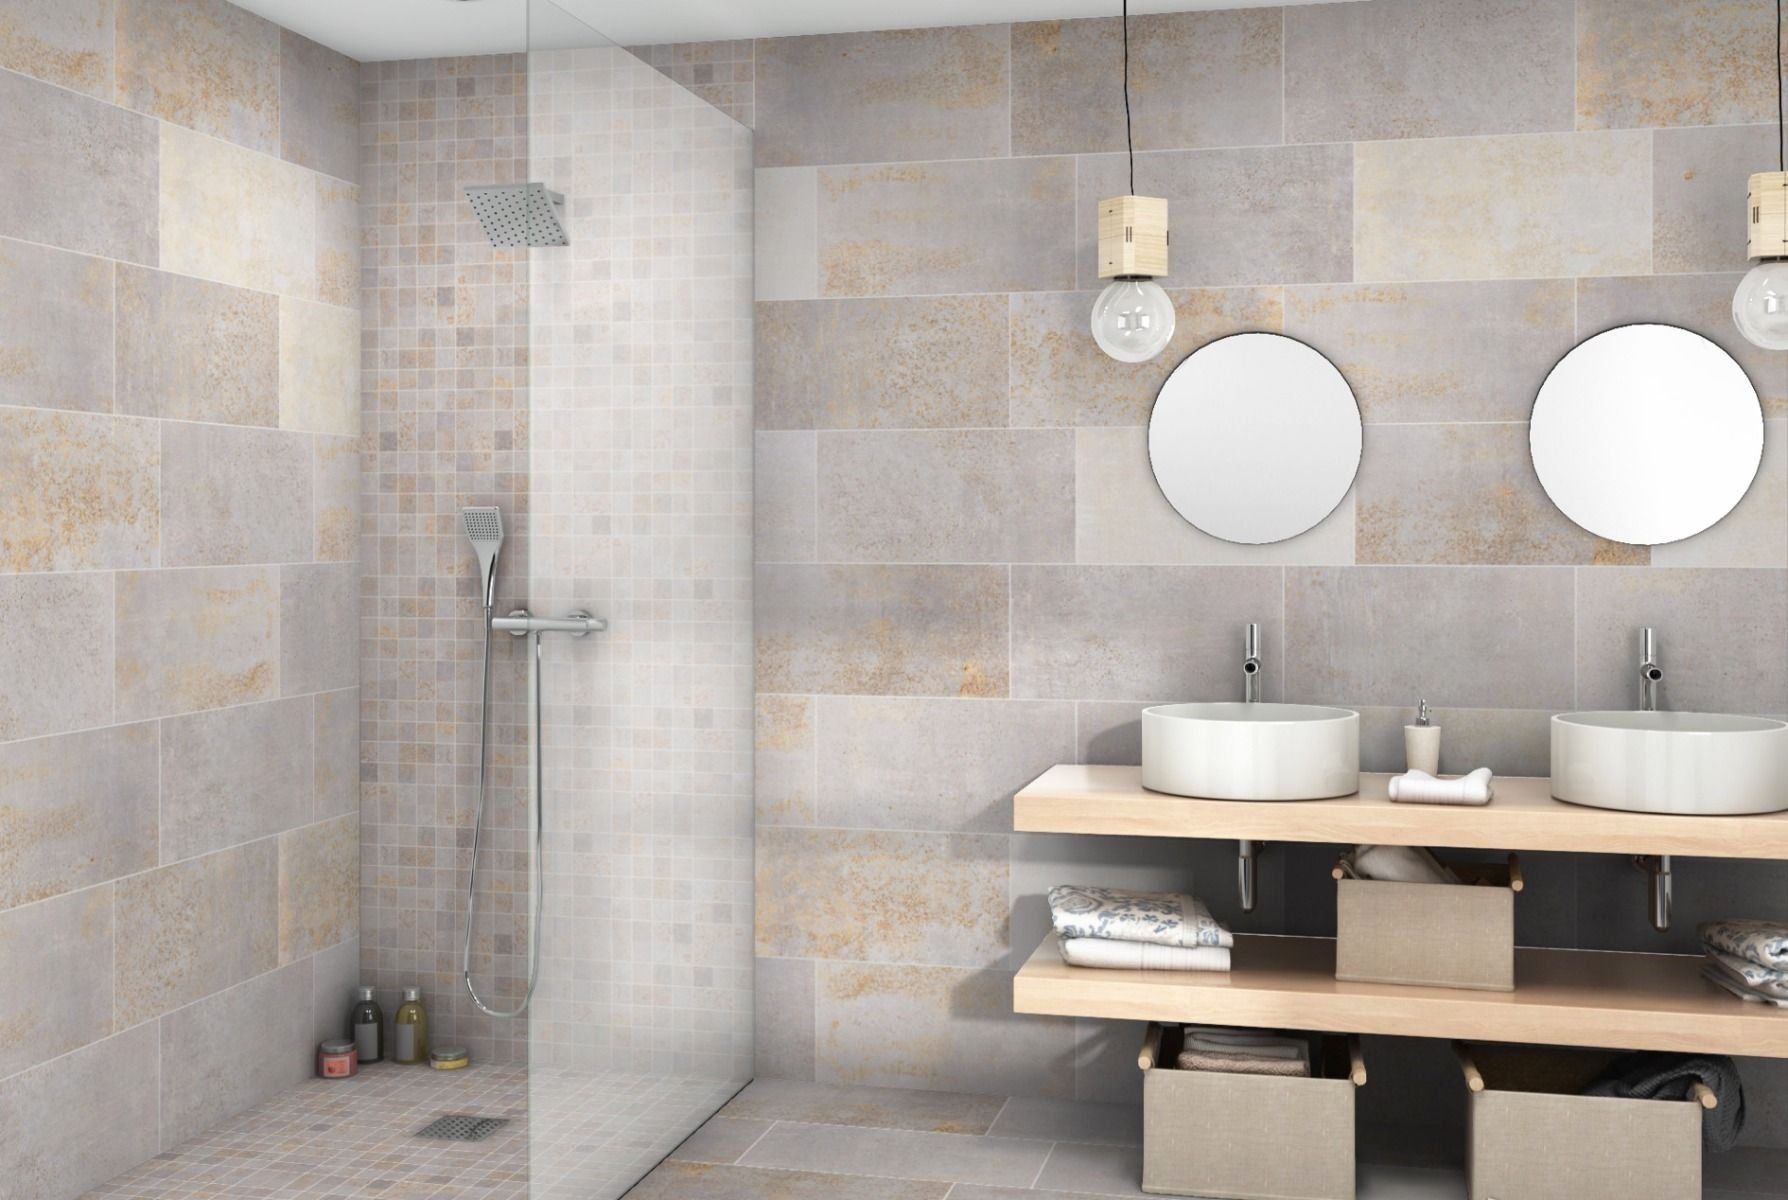 Removing Tile From Bathroom Walls Can Be A Labor Intensive Messy Process And The Work Is Not Over Once Tile Removal Bathroom Wall Tile Remove Tile Backsplash